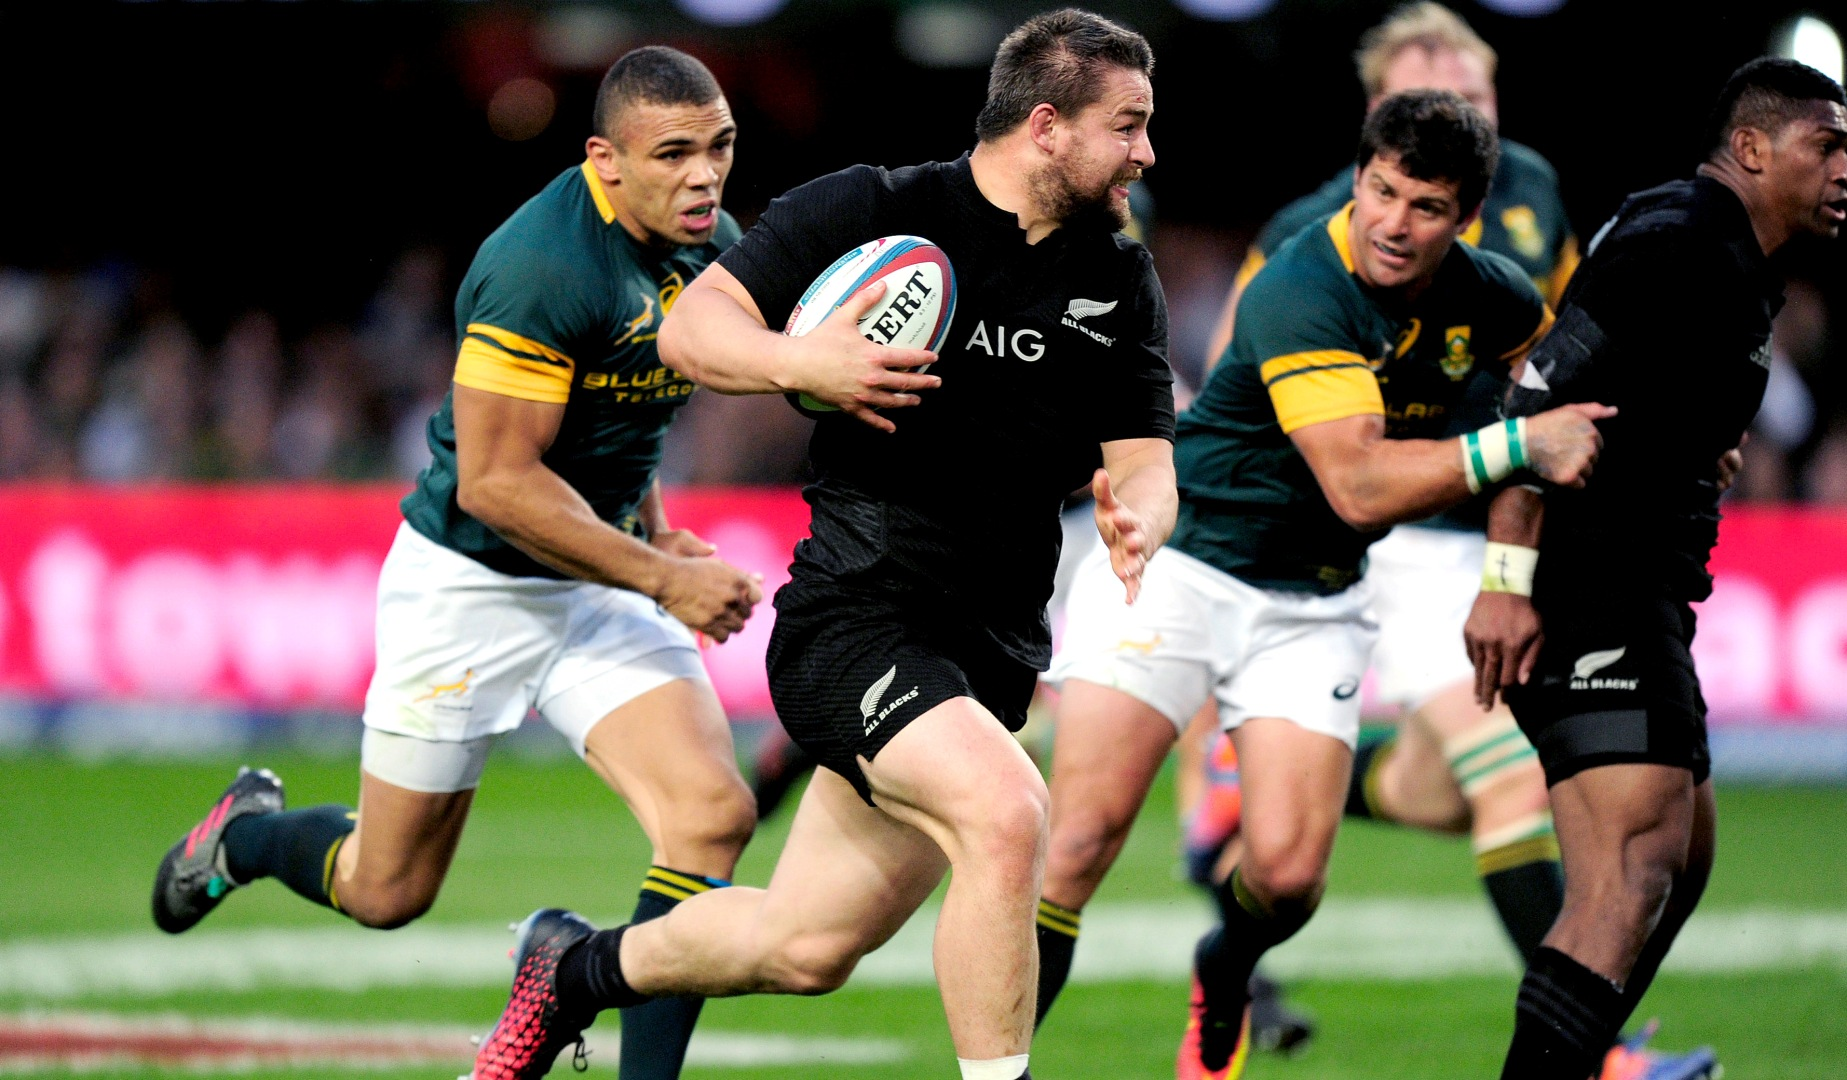 South Africa 15 New Zealand 57: Five things we learned